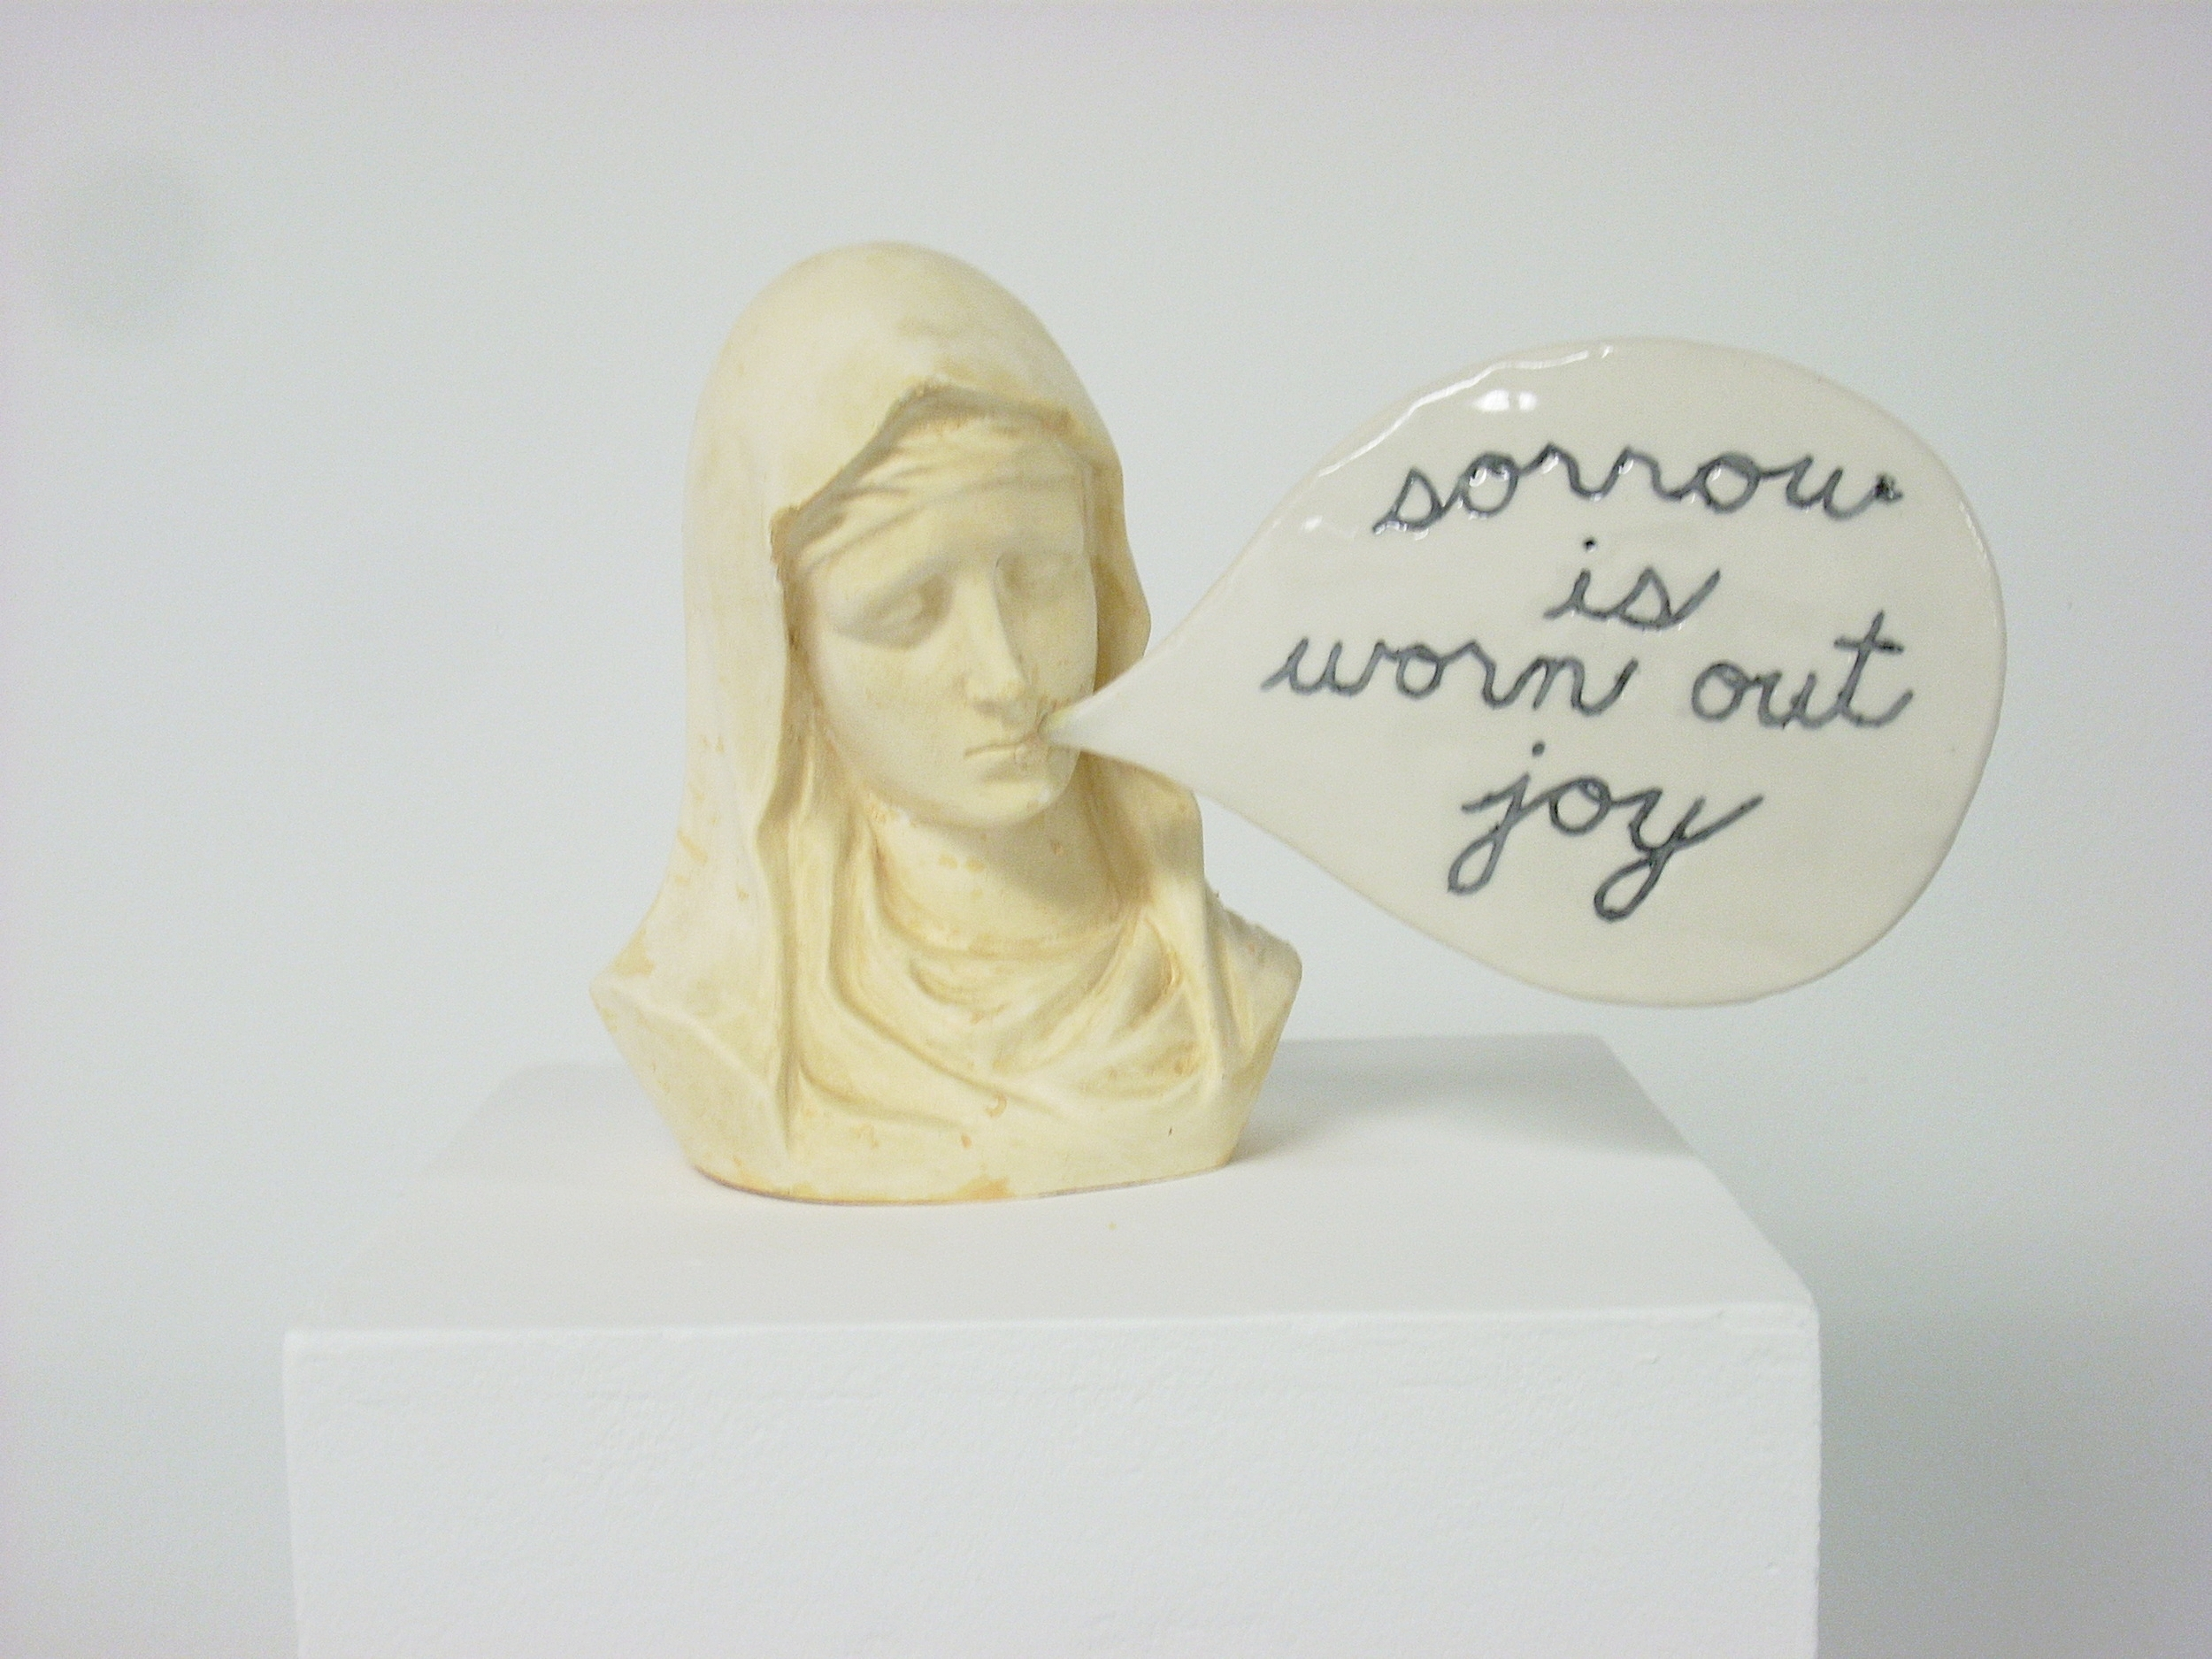 Sorrow (object study), 2008